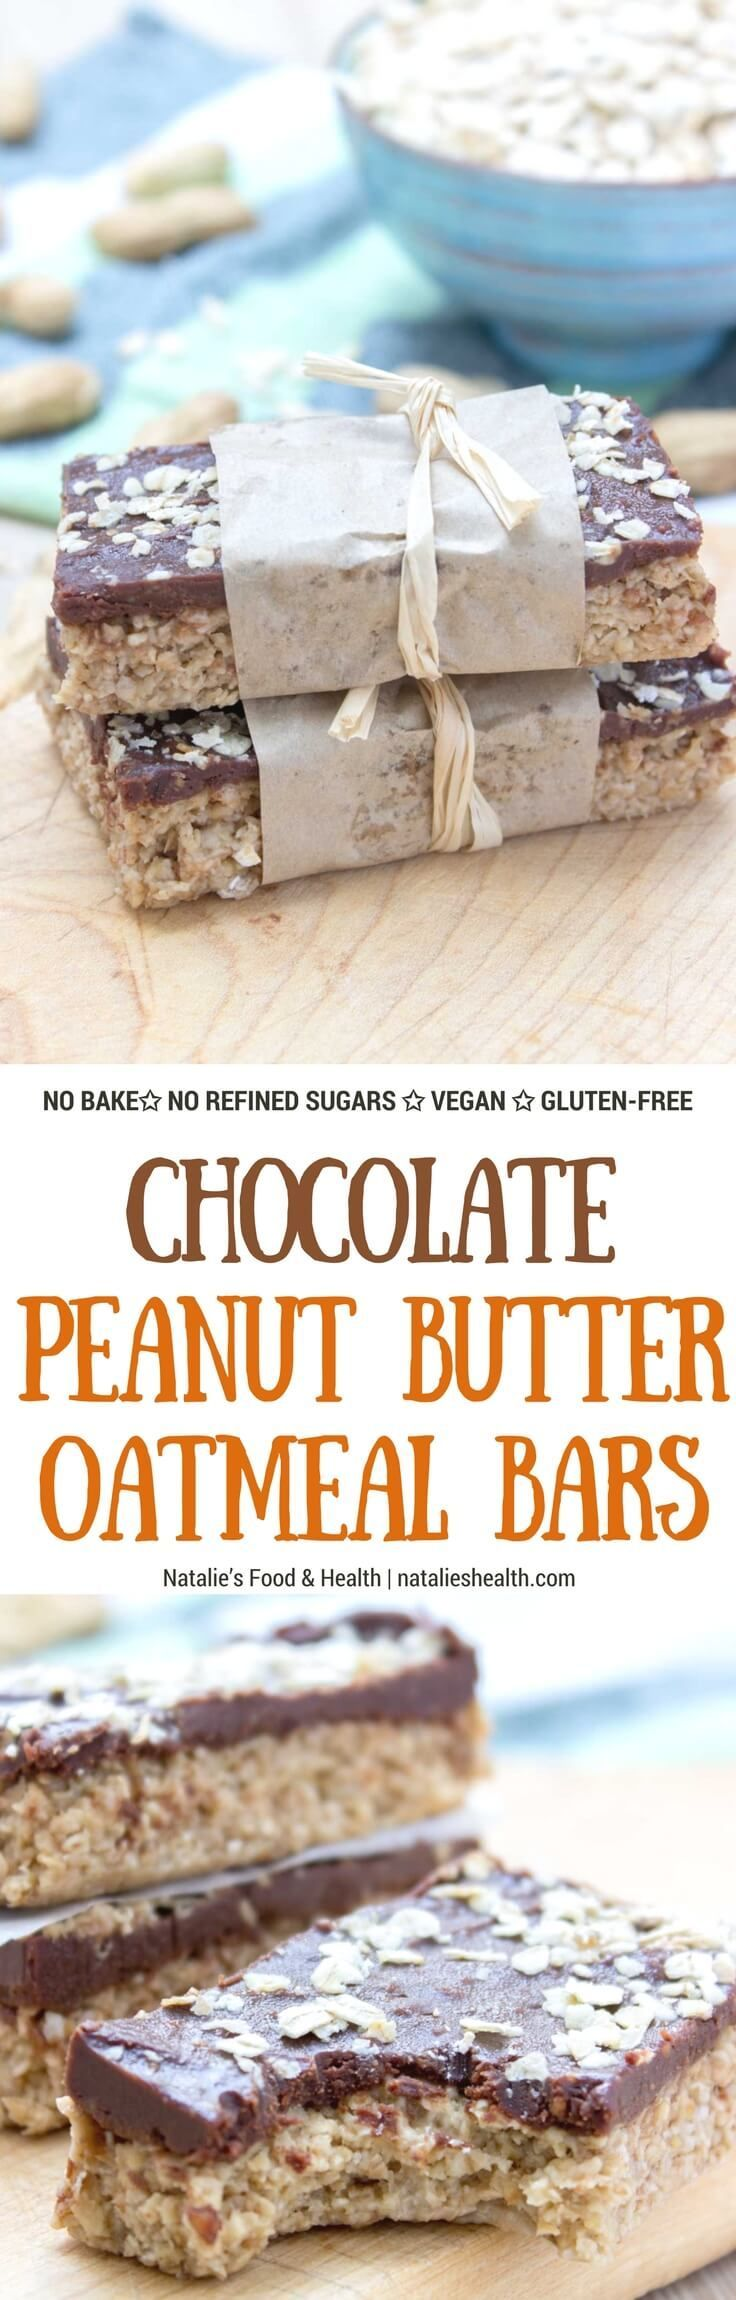 Protein-rich and delicious, No Bake Chocolate Peanut Butter Banana Oatmeal Bars made with all HEALTHY natural ingredients. These bars are vegan, refined sugar-free and gluten-free and packed with healthy dietary fibers. A perfect midday bite, or post work